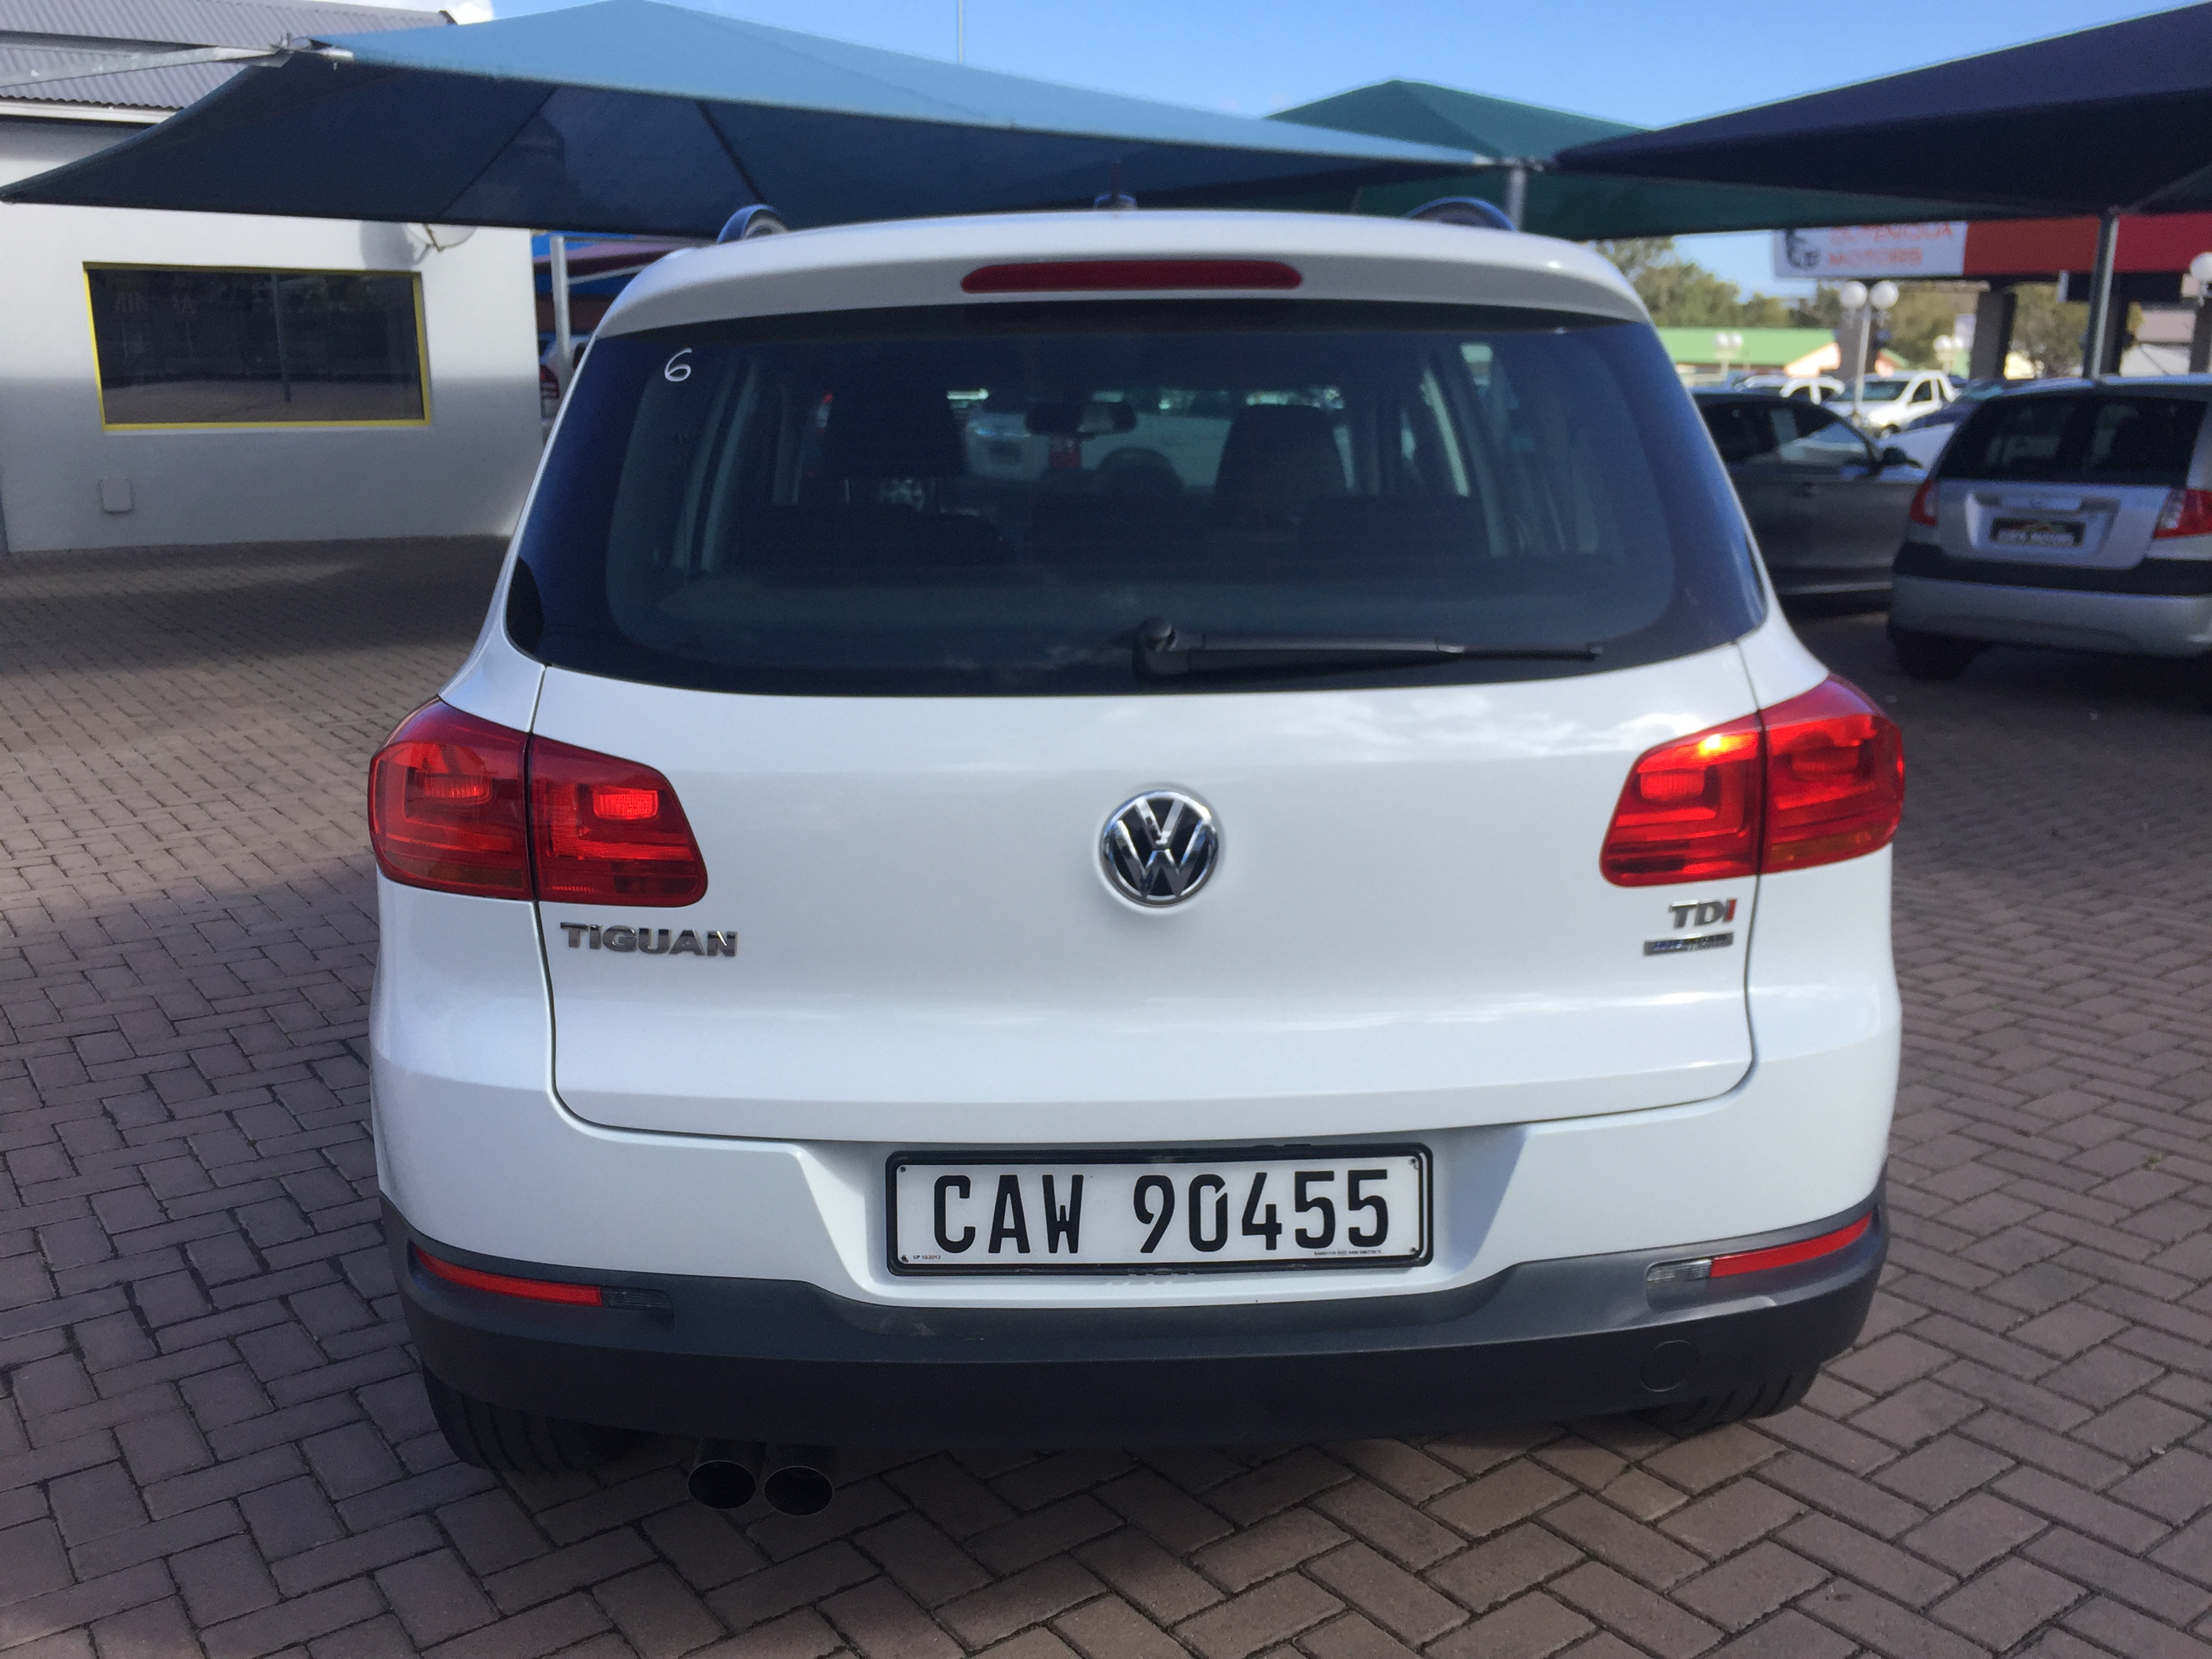 2014 volkswagen tiguan 2 0 tdi bluemotion eden motors george. Black Bedroom Furniture Sets. Home Design Ideas